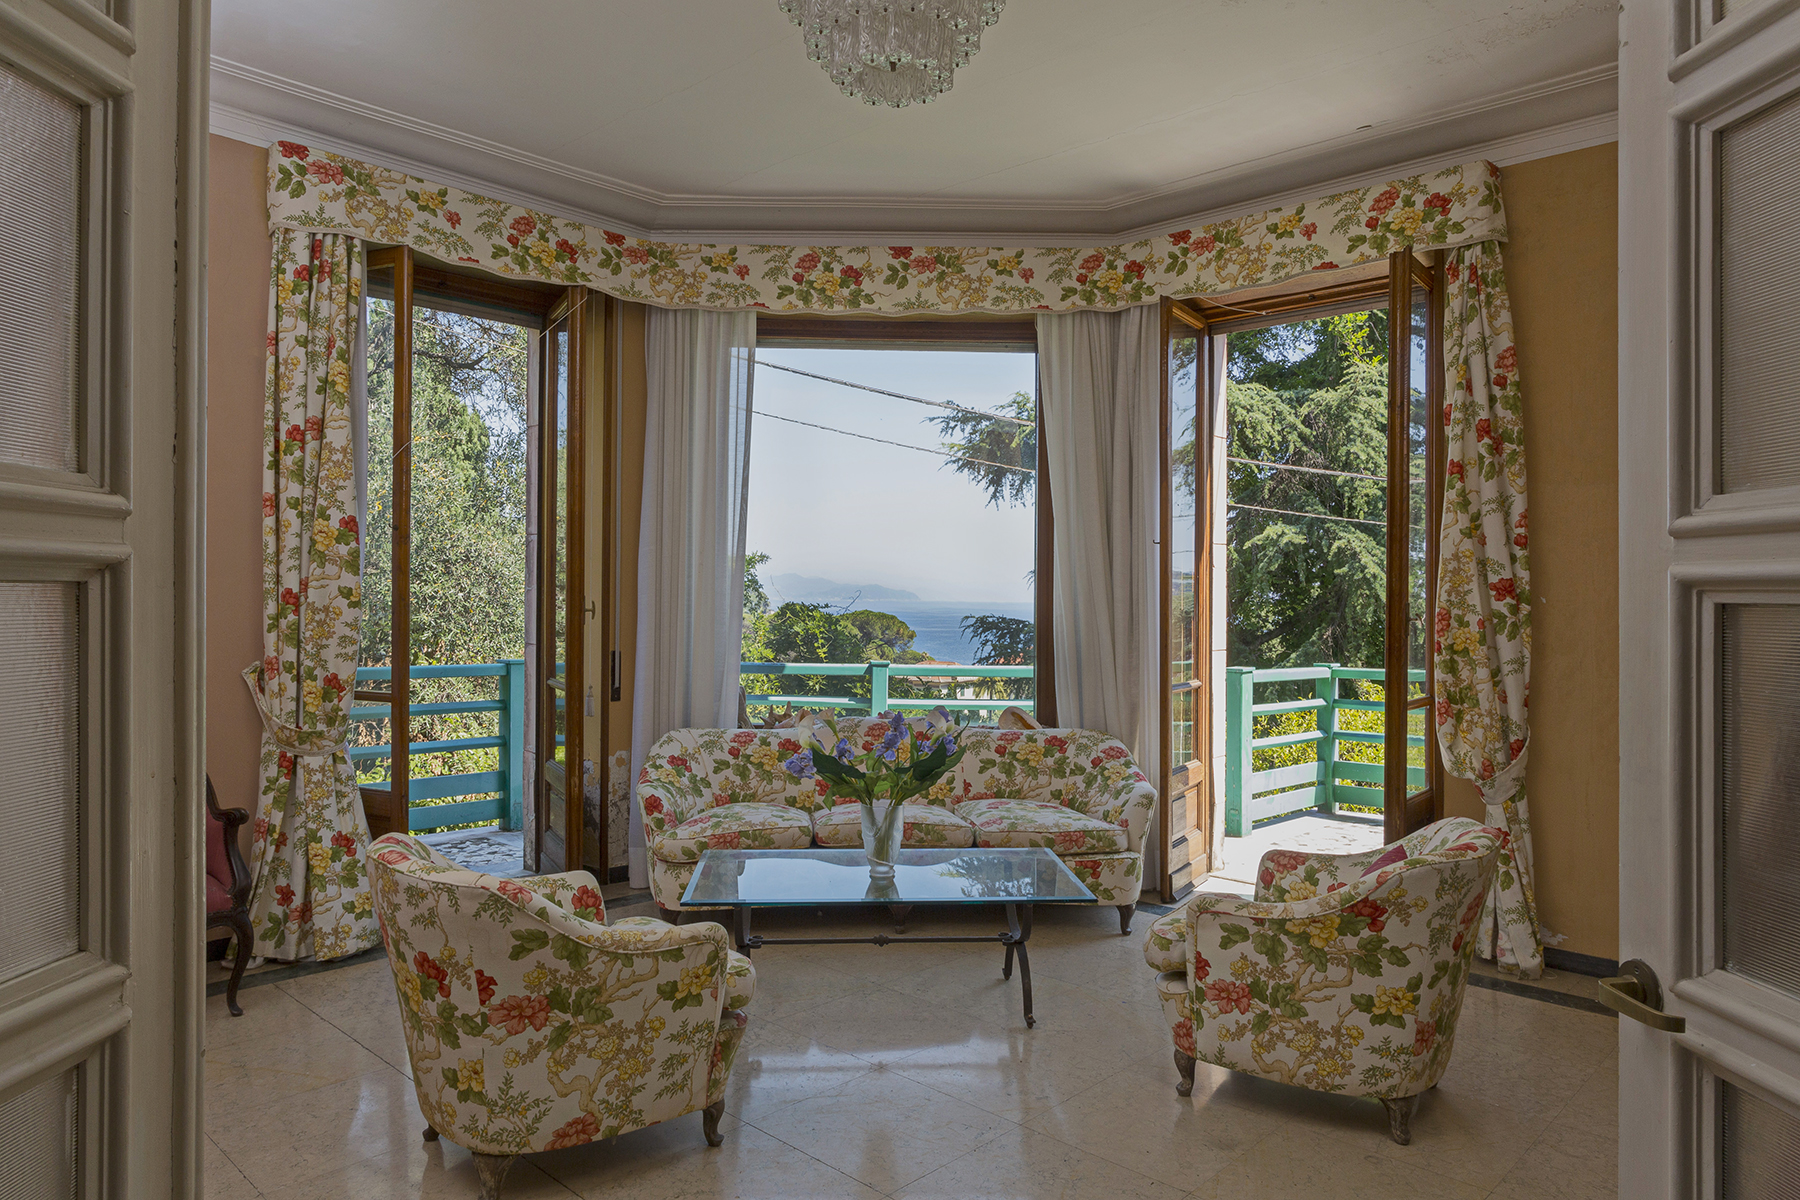 Einfamilienhaus für Verkauf beim Exquisite villa with private garden and amazing sea view Santa Margherita Ligure, Genoa Italien